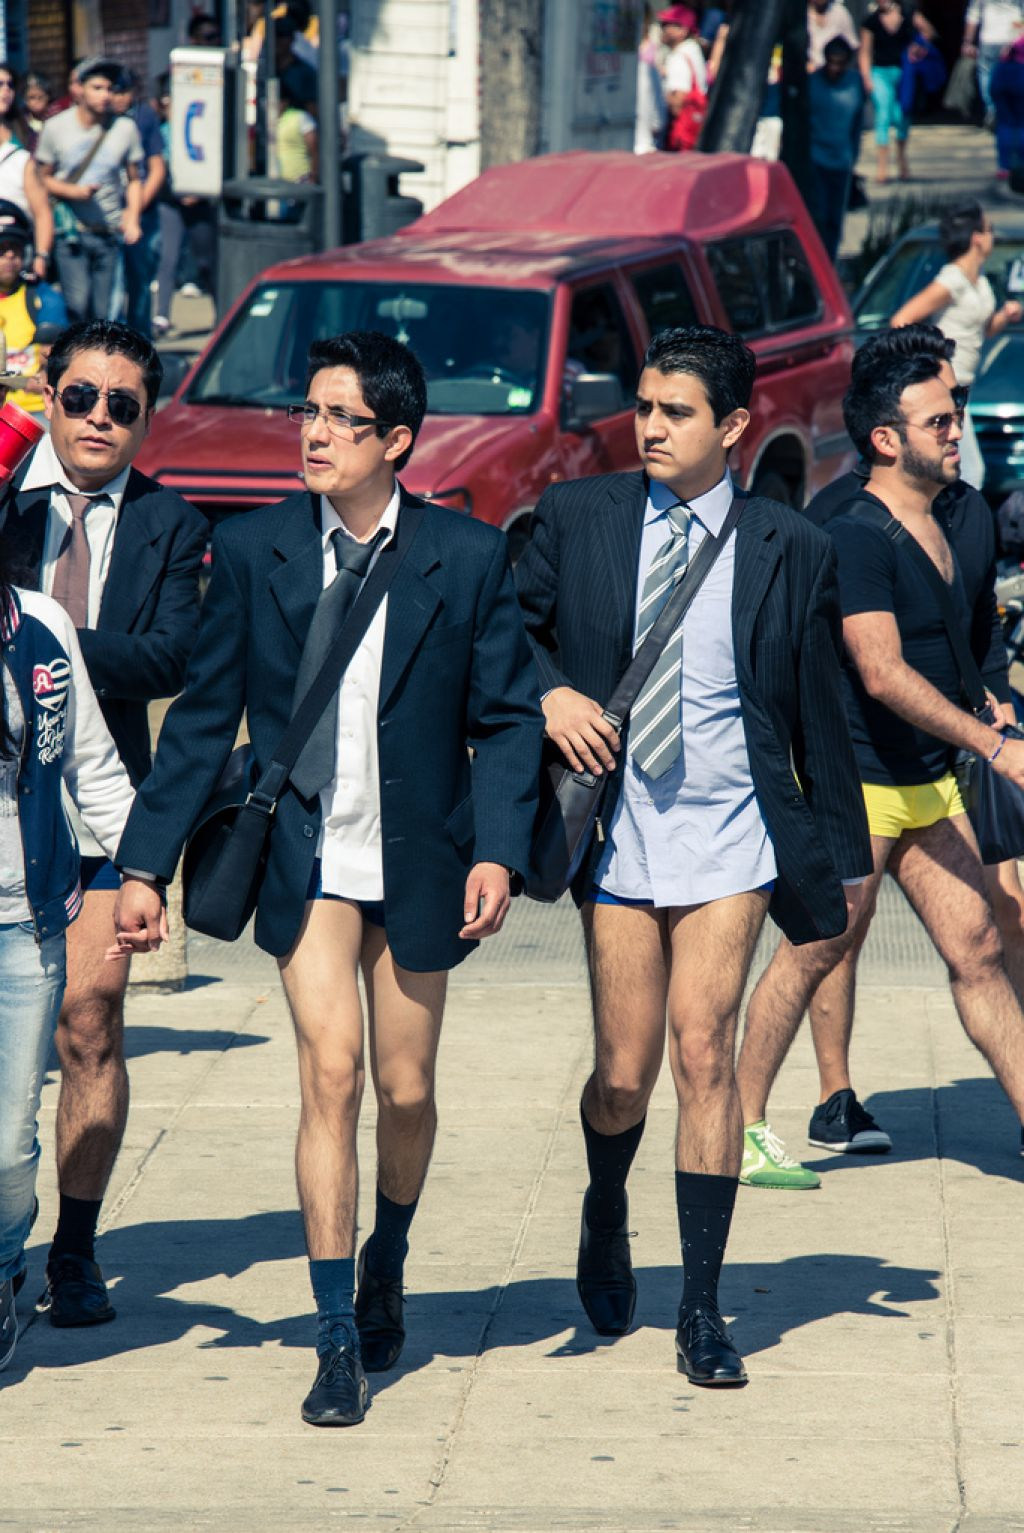 no pants No Pants Day in Mexico City